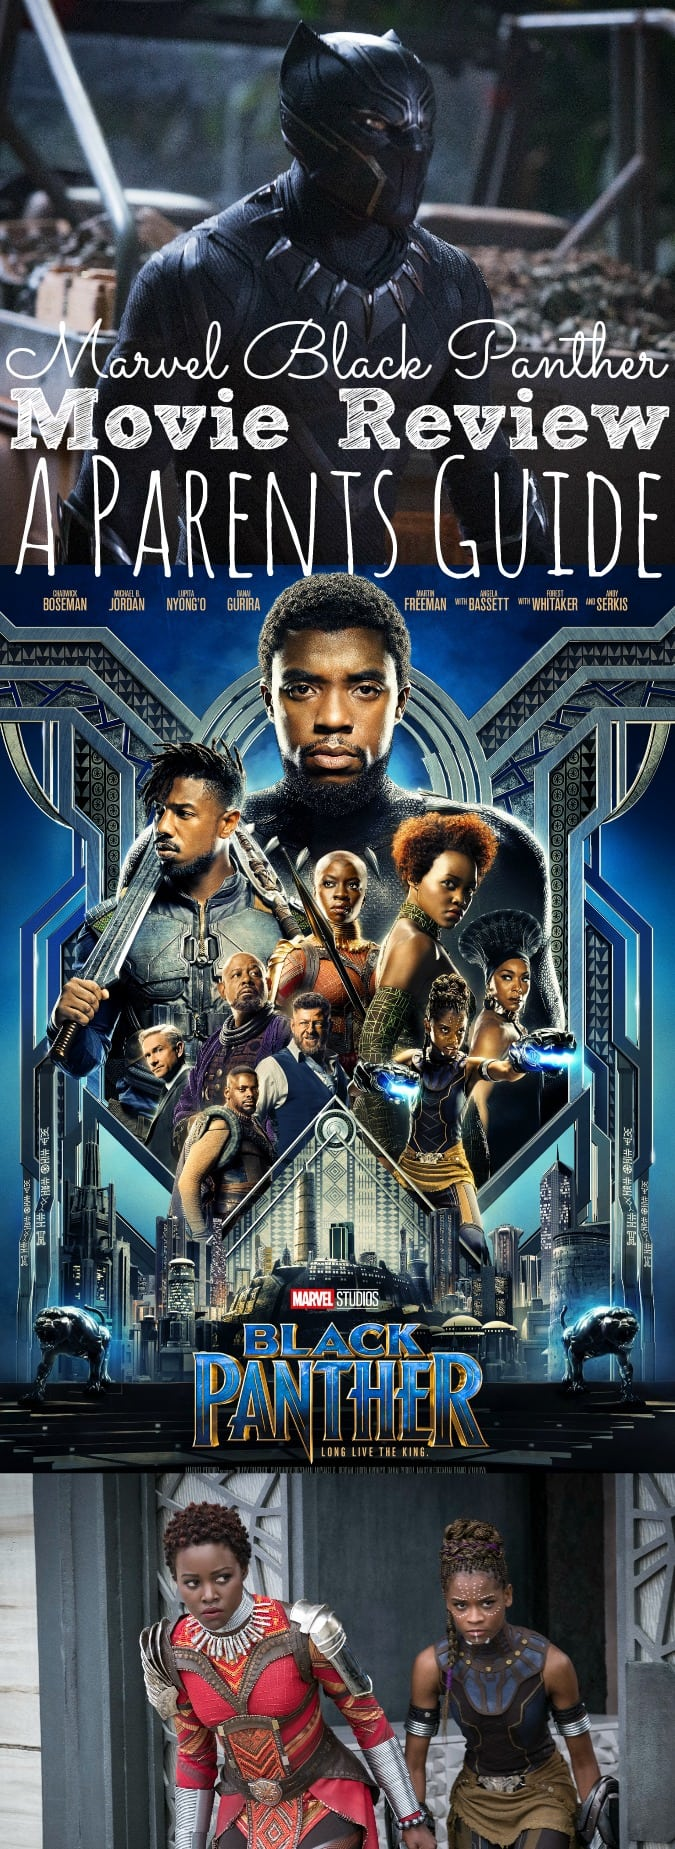 Black Panther Movie Review #BlackPanther | A Parent's Guide - simplytodaylife.com